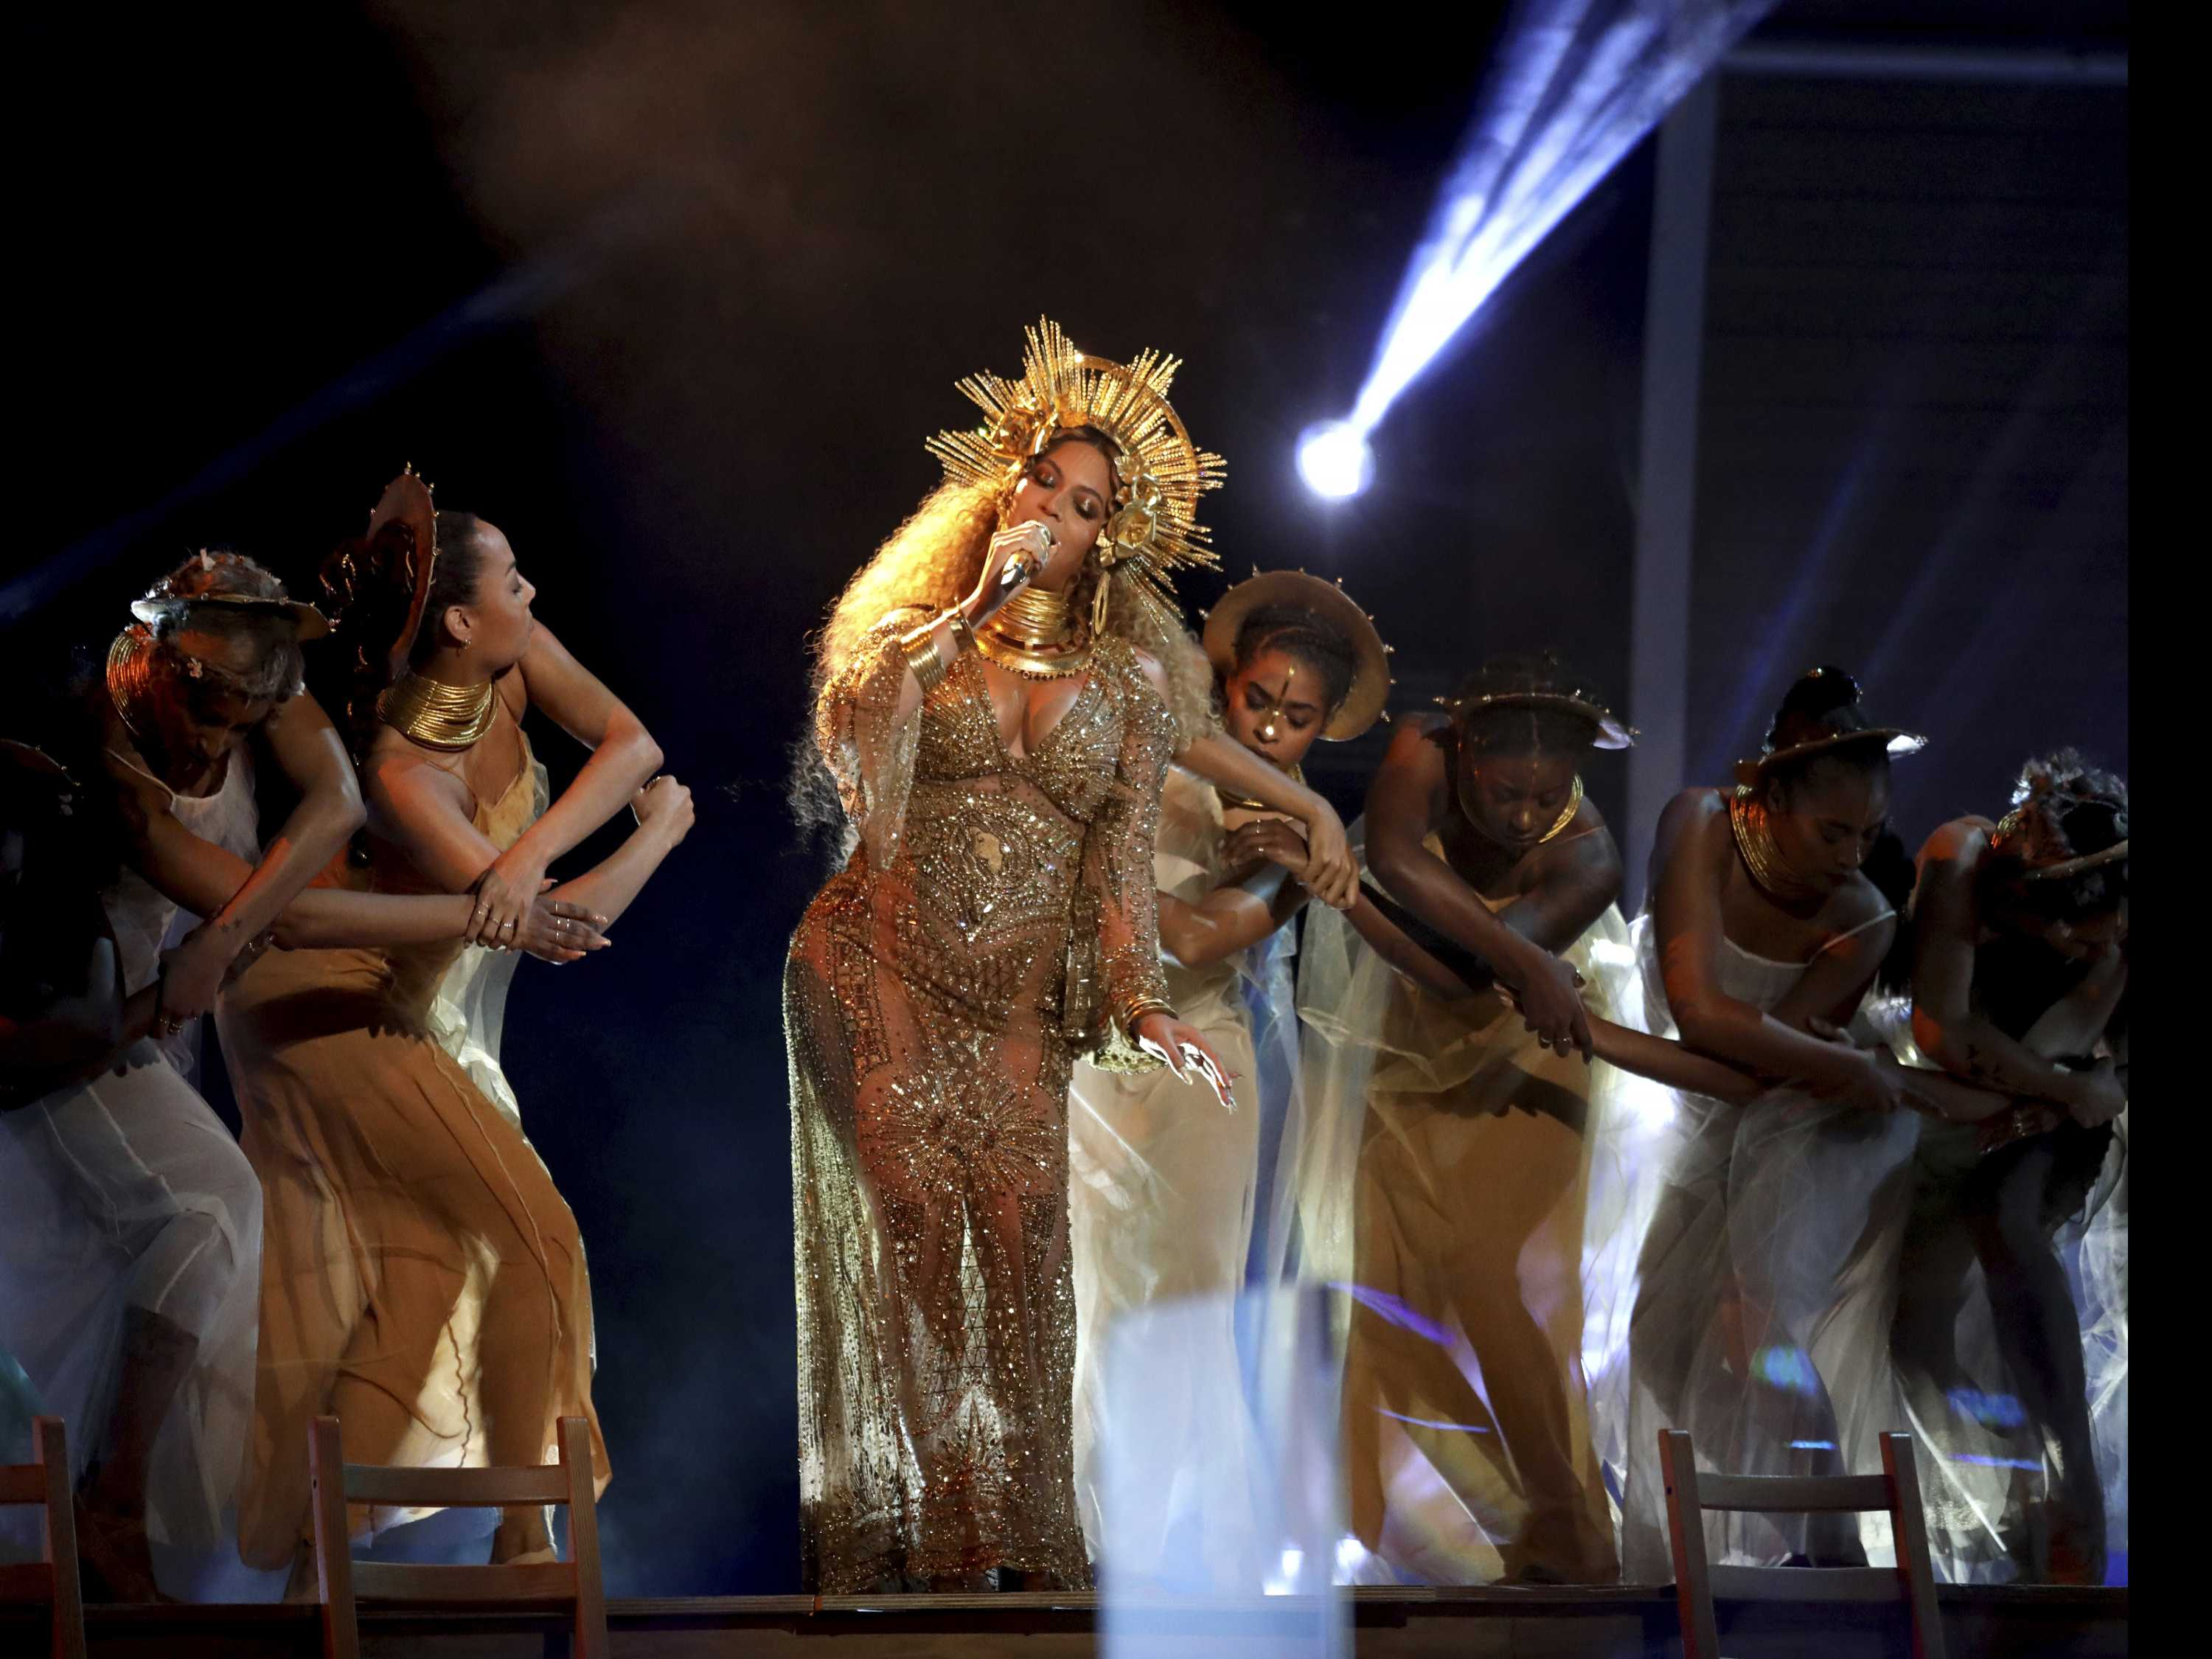 Beyonce Wows At Grammys, Davie Bowie Wins 4 Awards